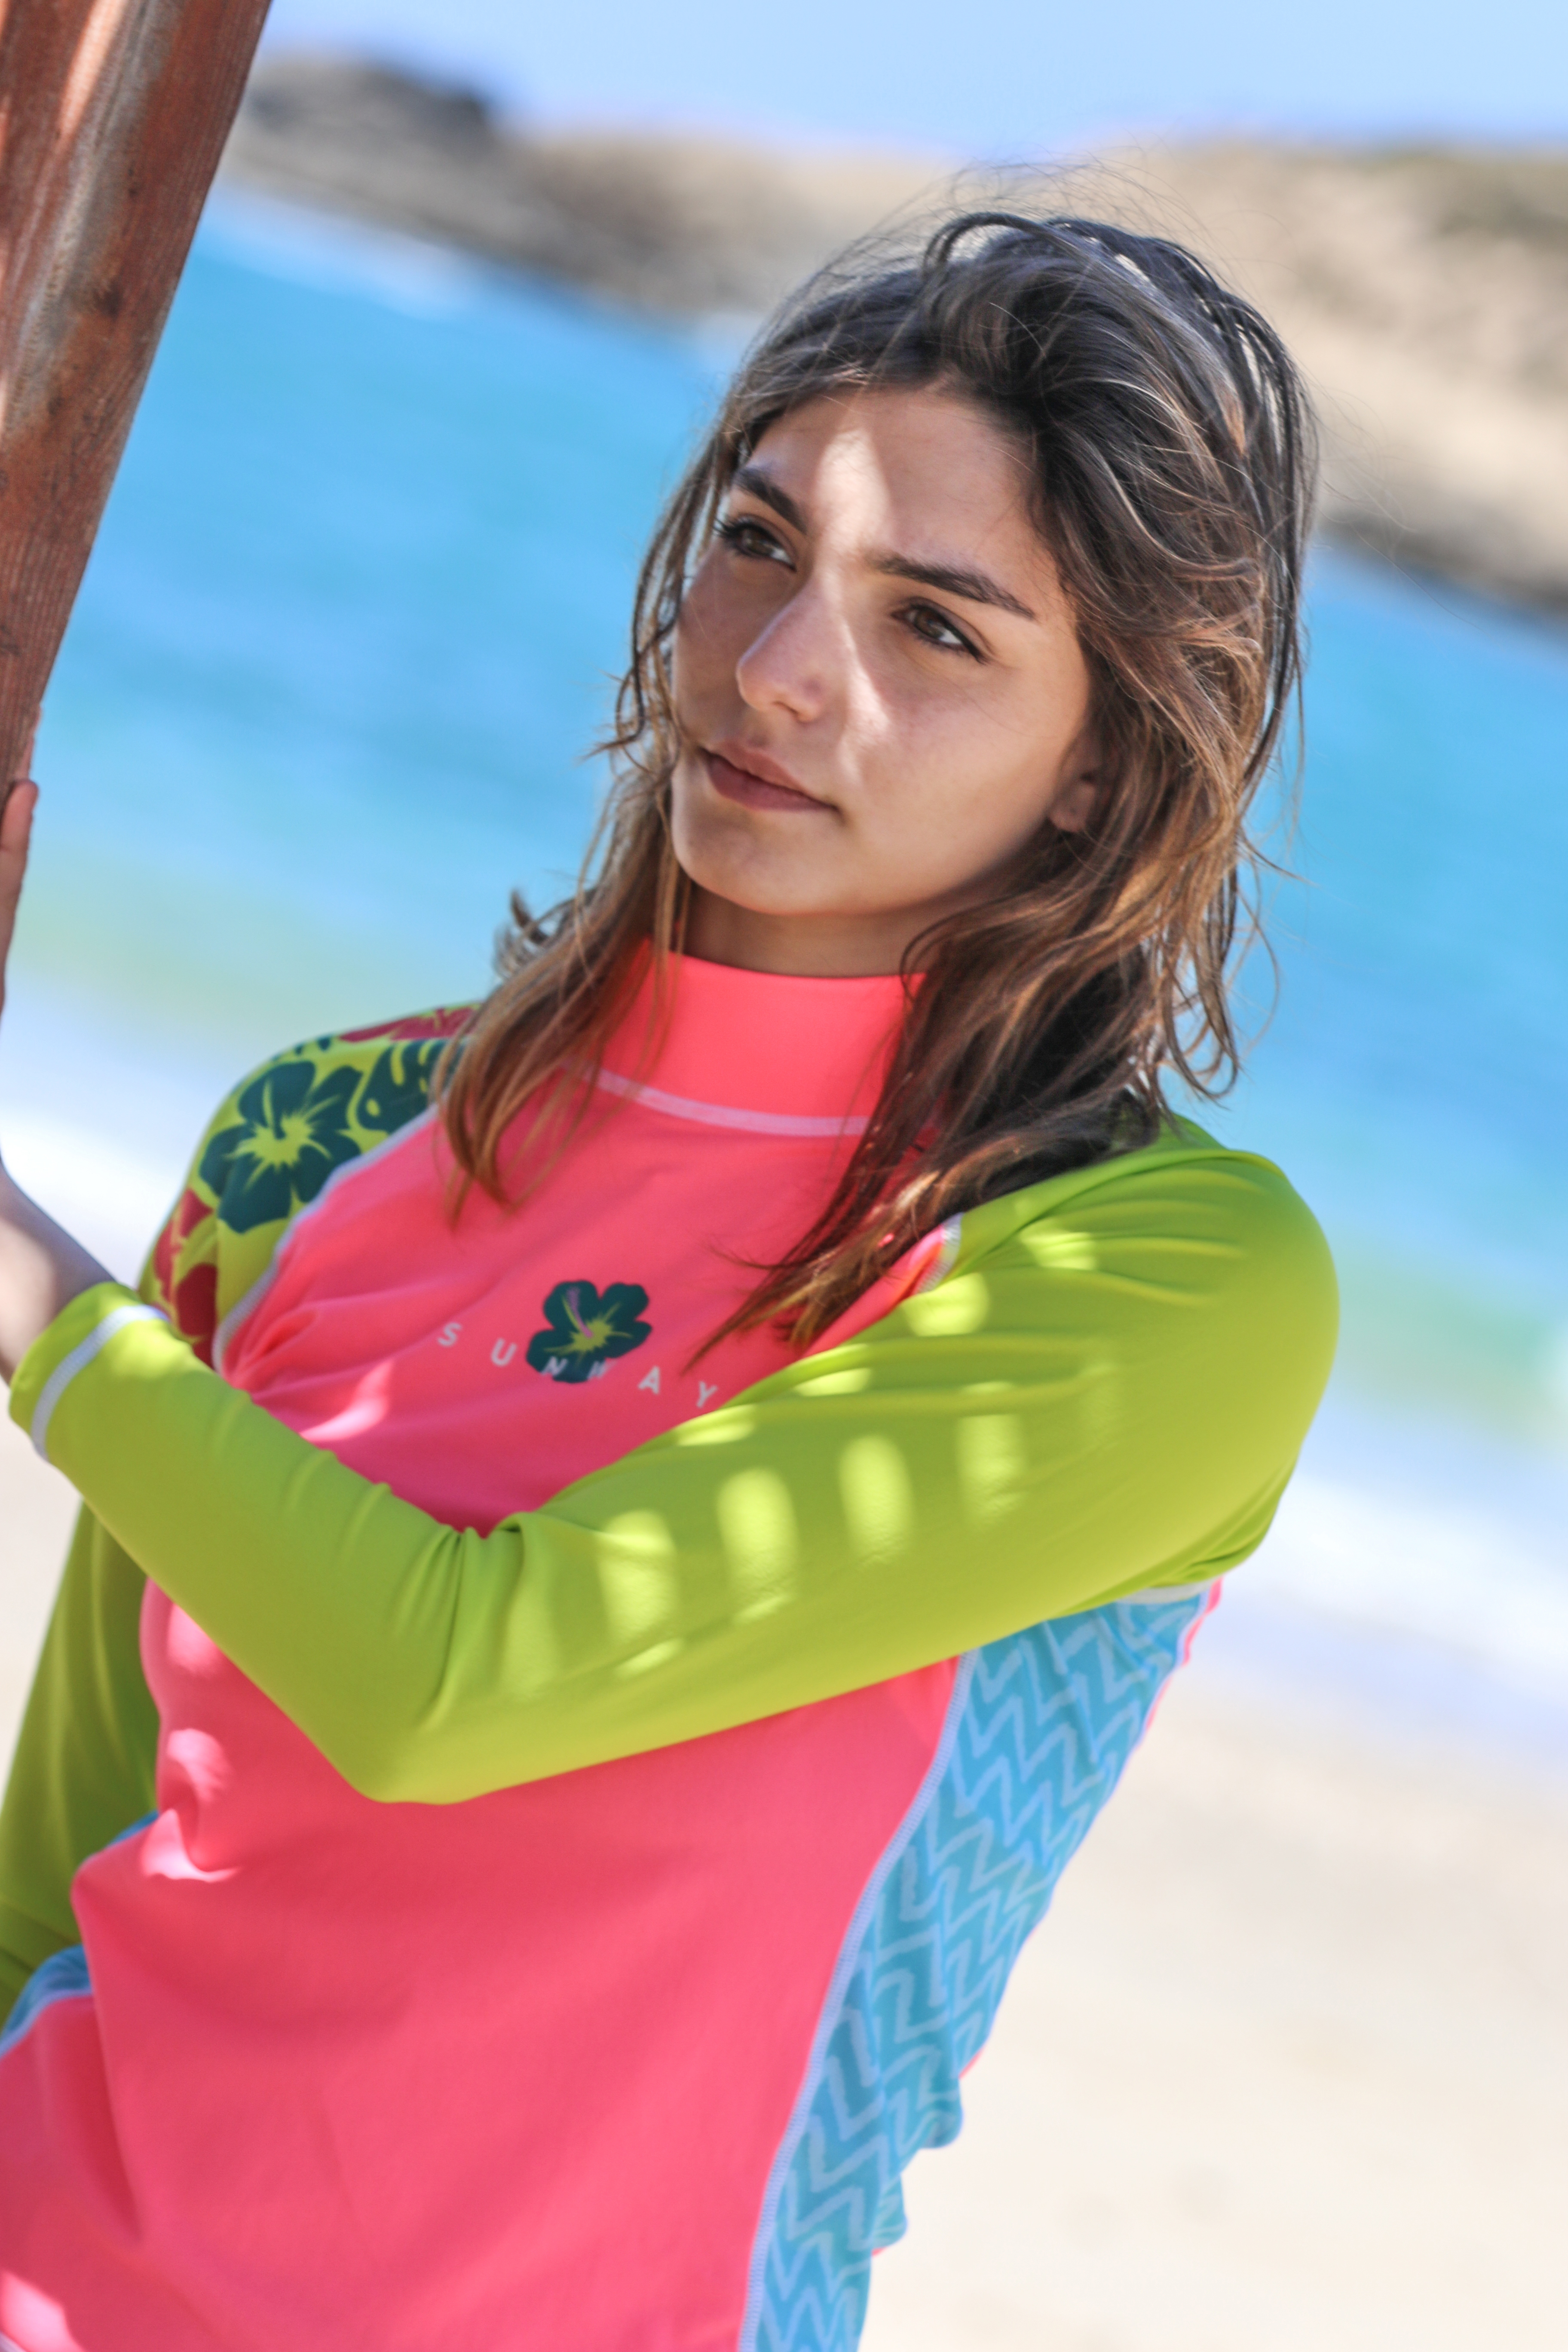 eb2e5f0208 Home>Women>Shop by Products>UV Protective Swimwear>Long Sleeves Rashguards  colorful for Mother & Daughter